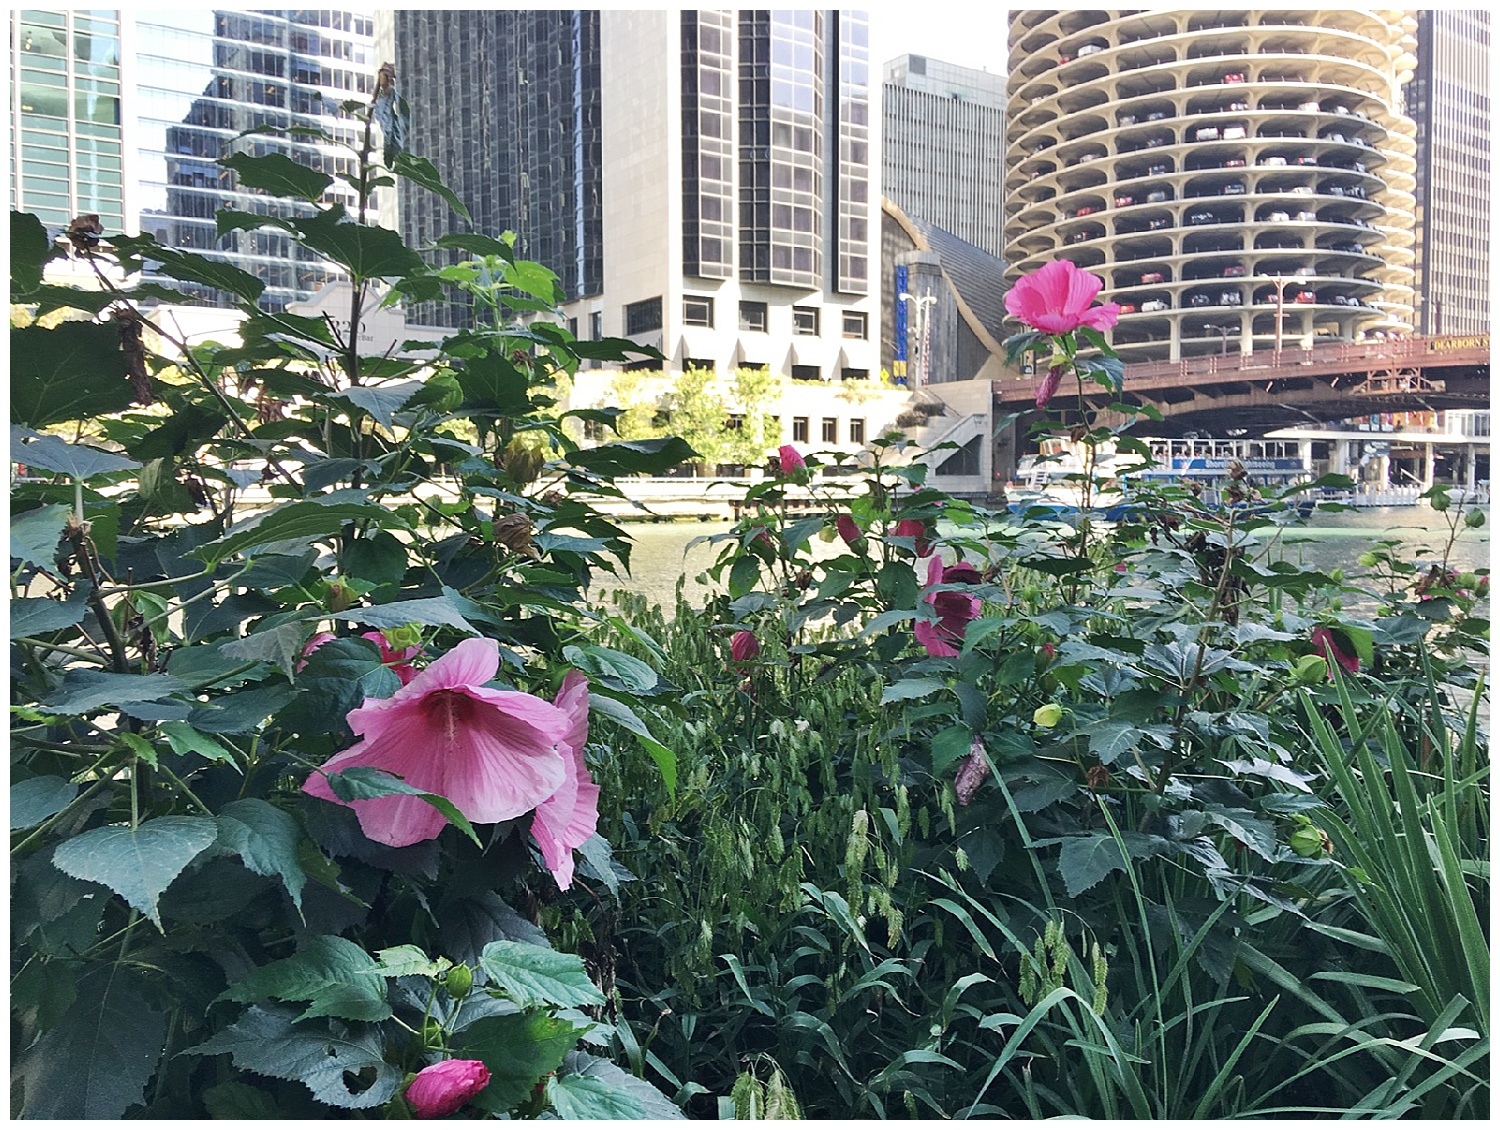 Hibiscus is a tropical flower. Chicago in the summer feels like the tropics!